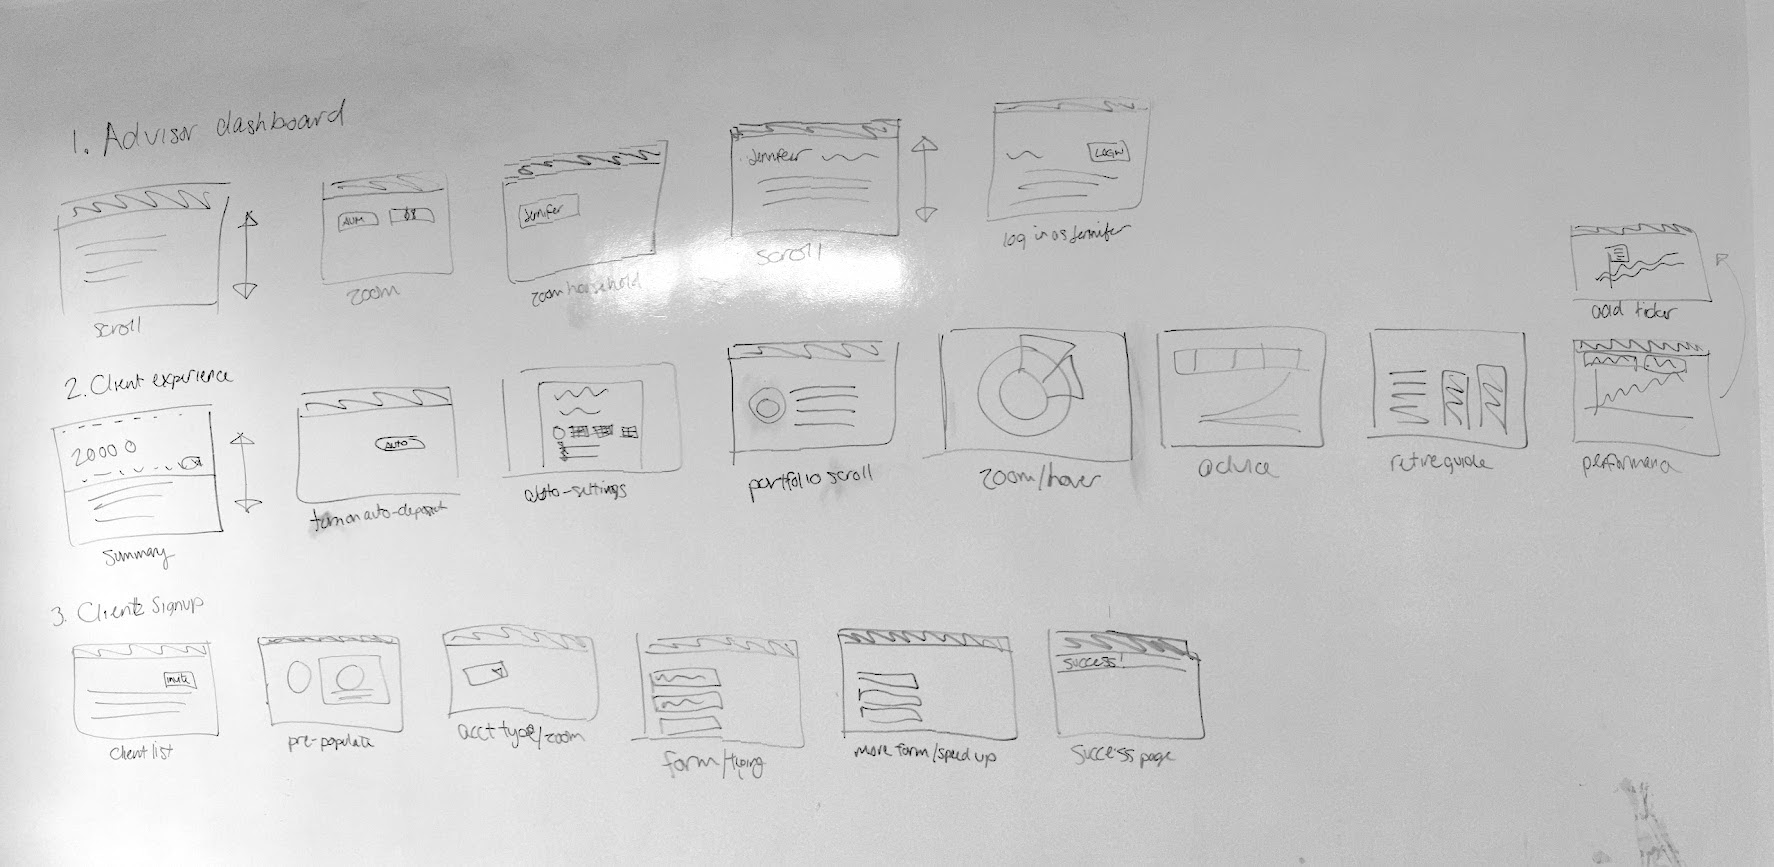 Whiteboard sketch of the different signup steps